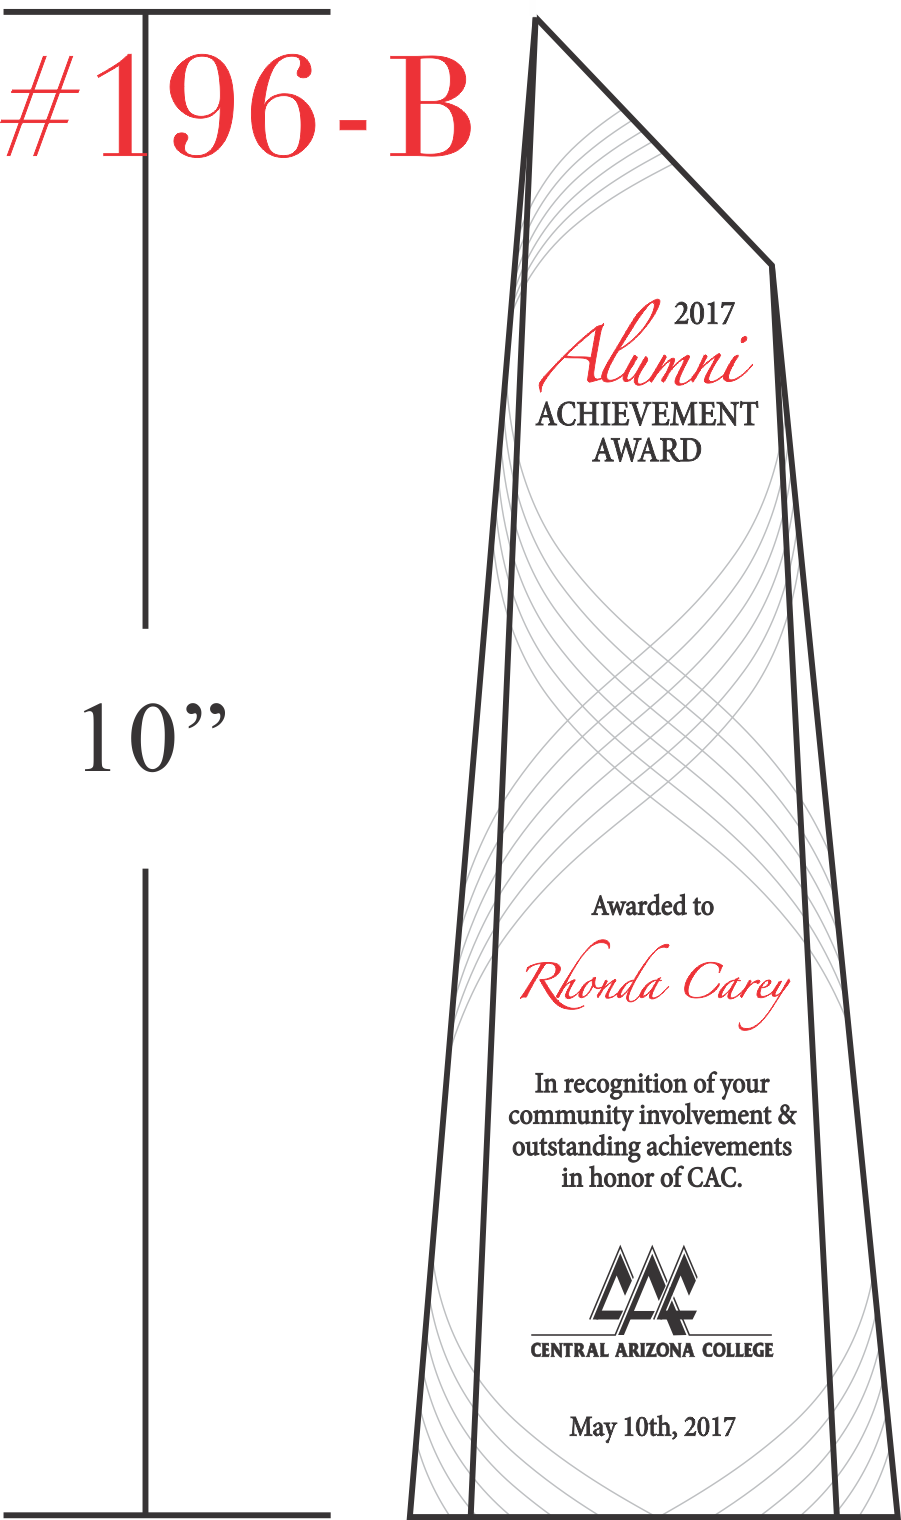 Annual Alumni Achievement Award